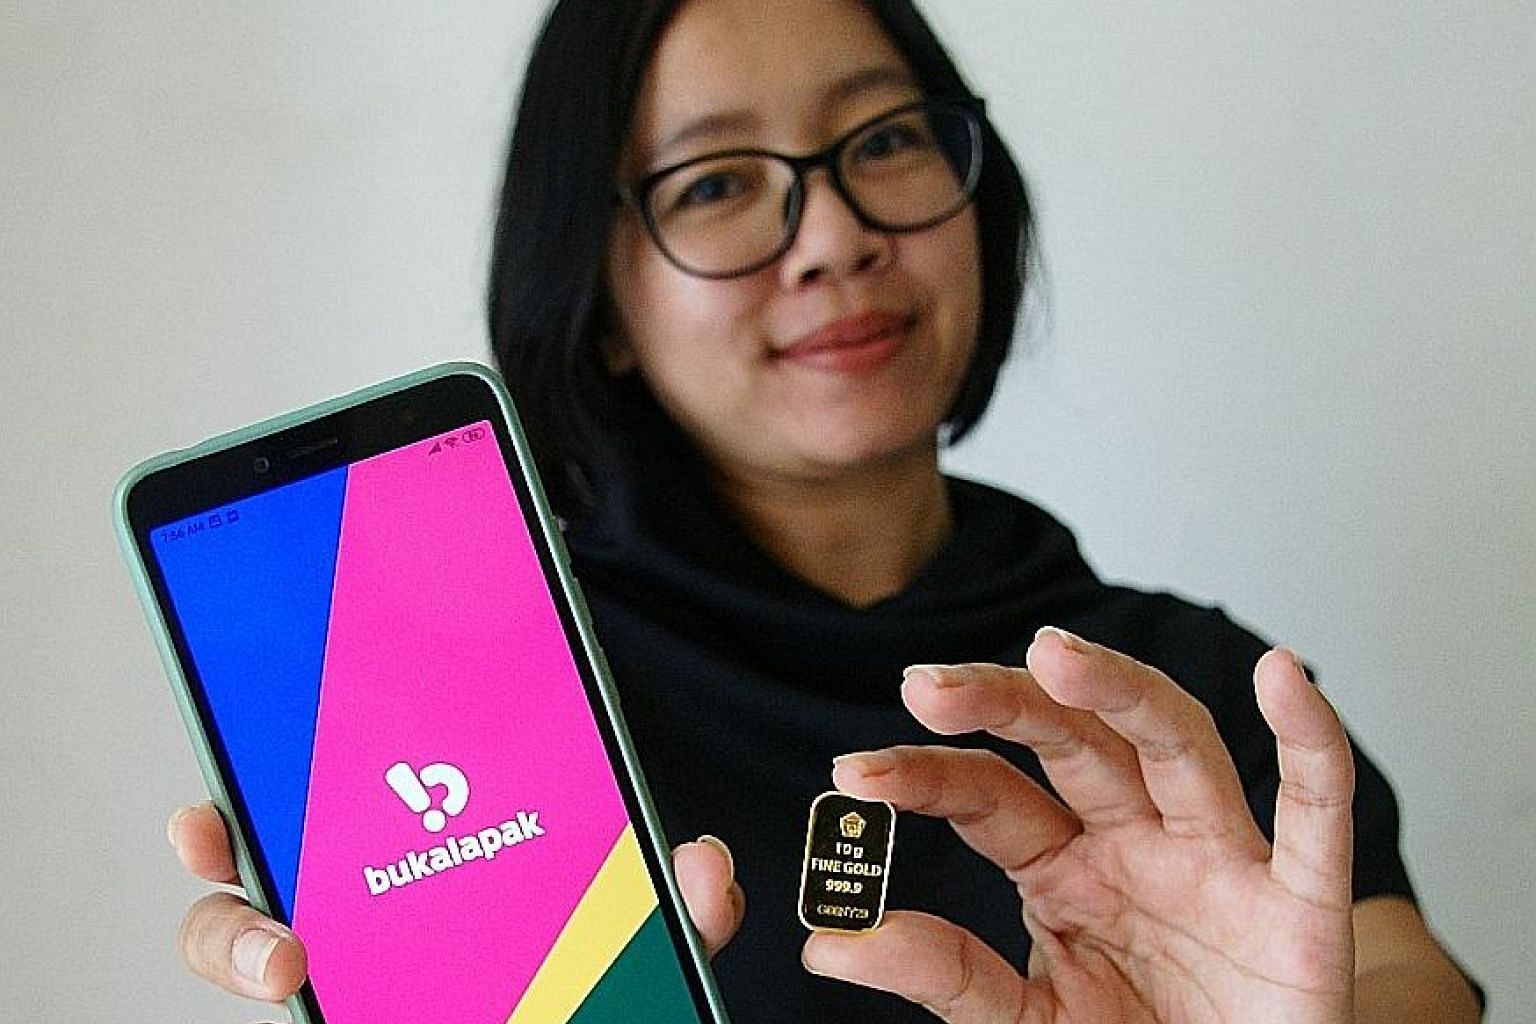 Ms Novi Ristyanie is among many Indonesians who have bought gold online. She made a profit of $100 when she sold her investment last month. PHOTO: COURTESY OF NOVI RISTYANIE